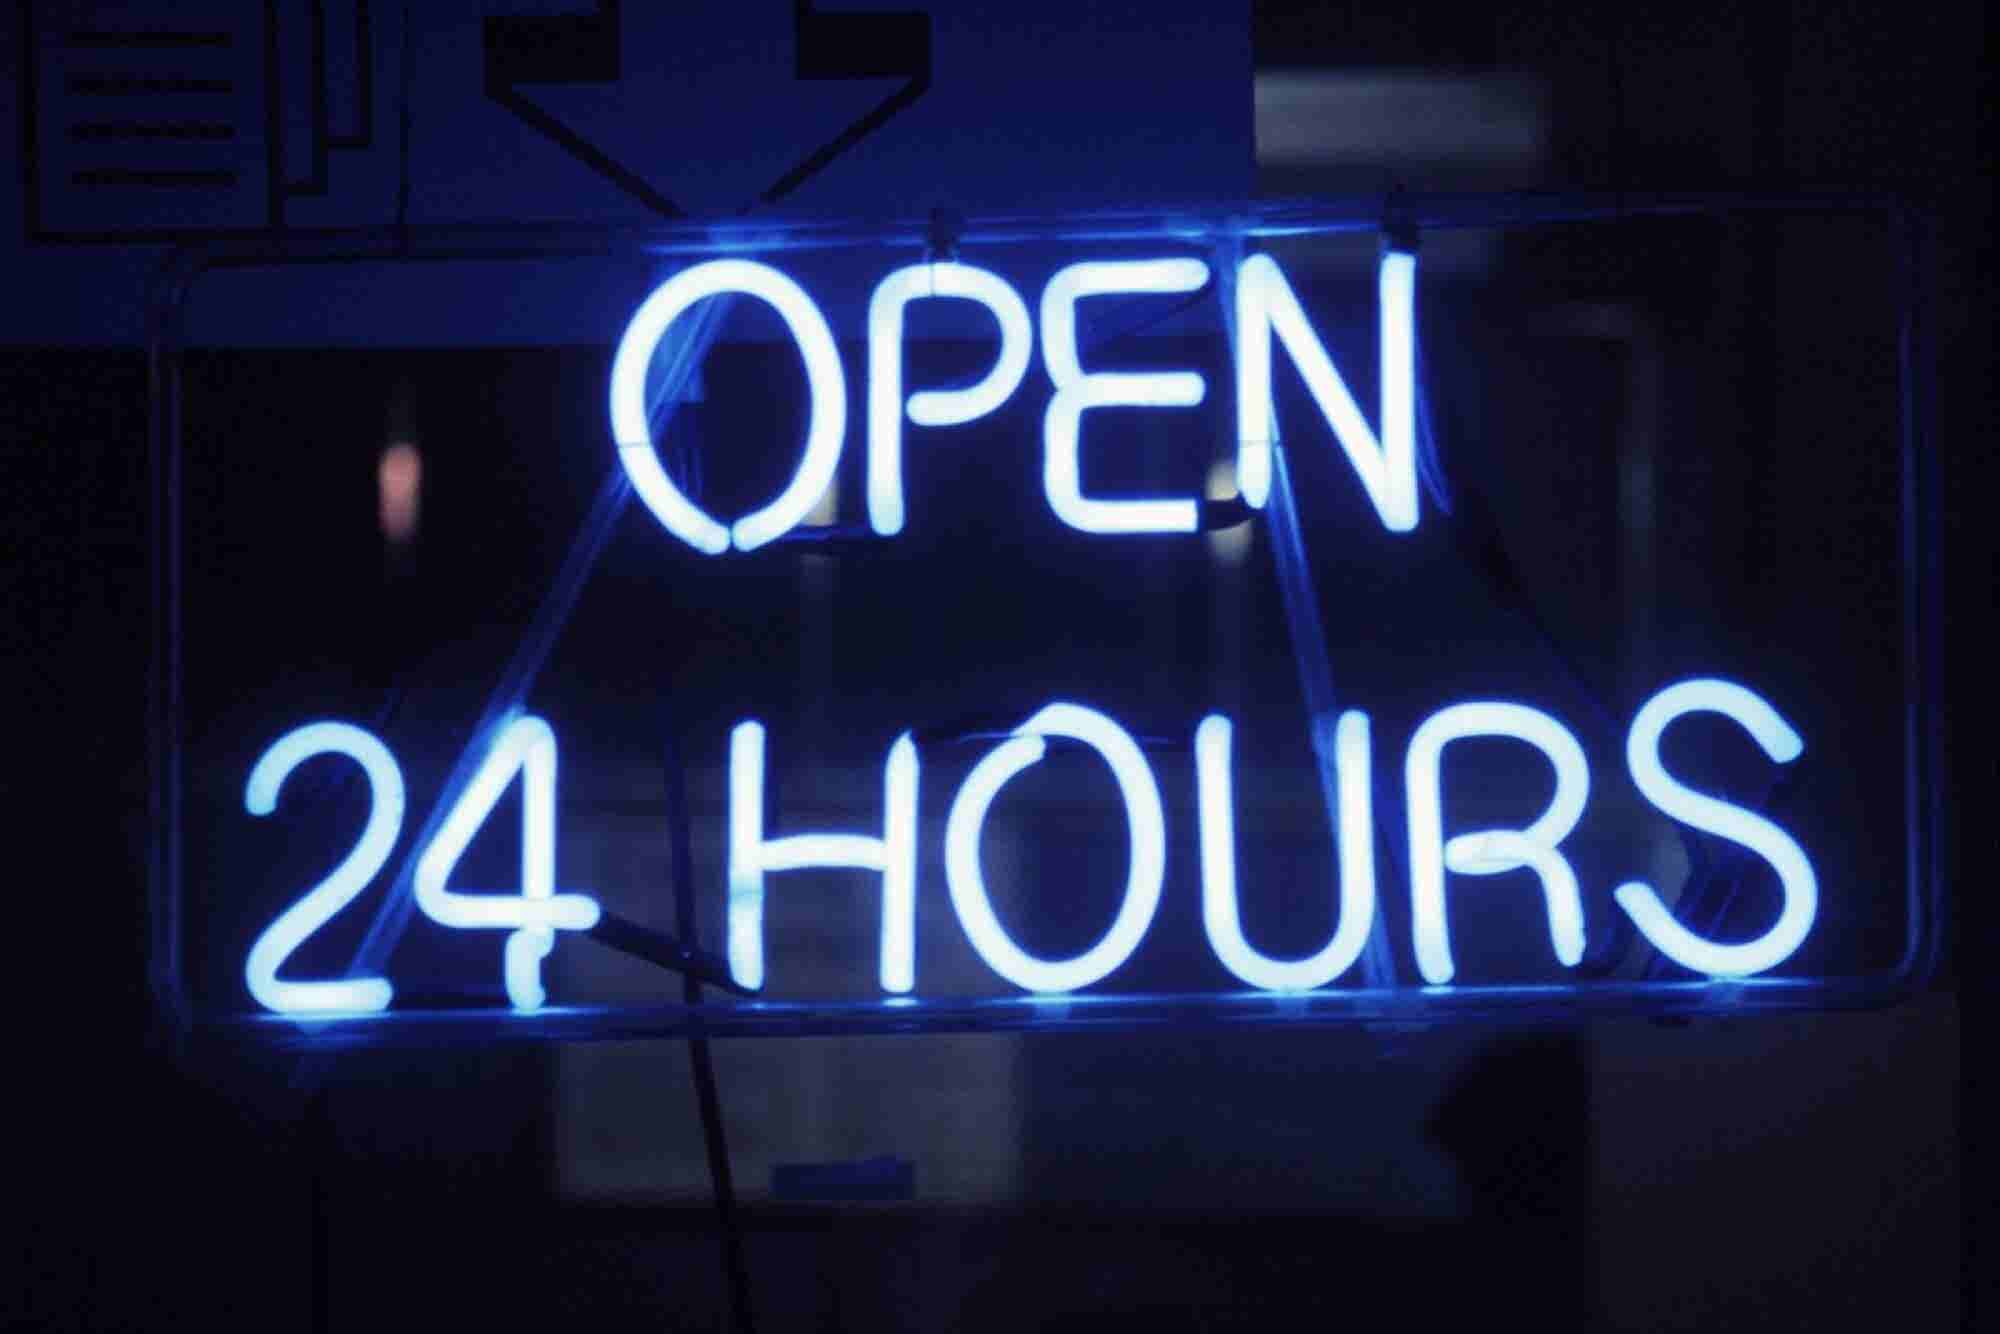 Here's How Your Business Can Be Open 24/7